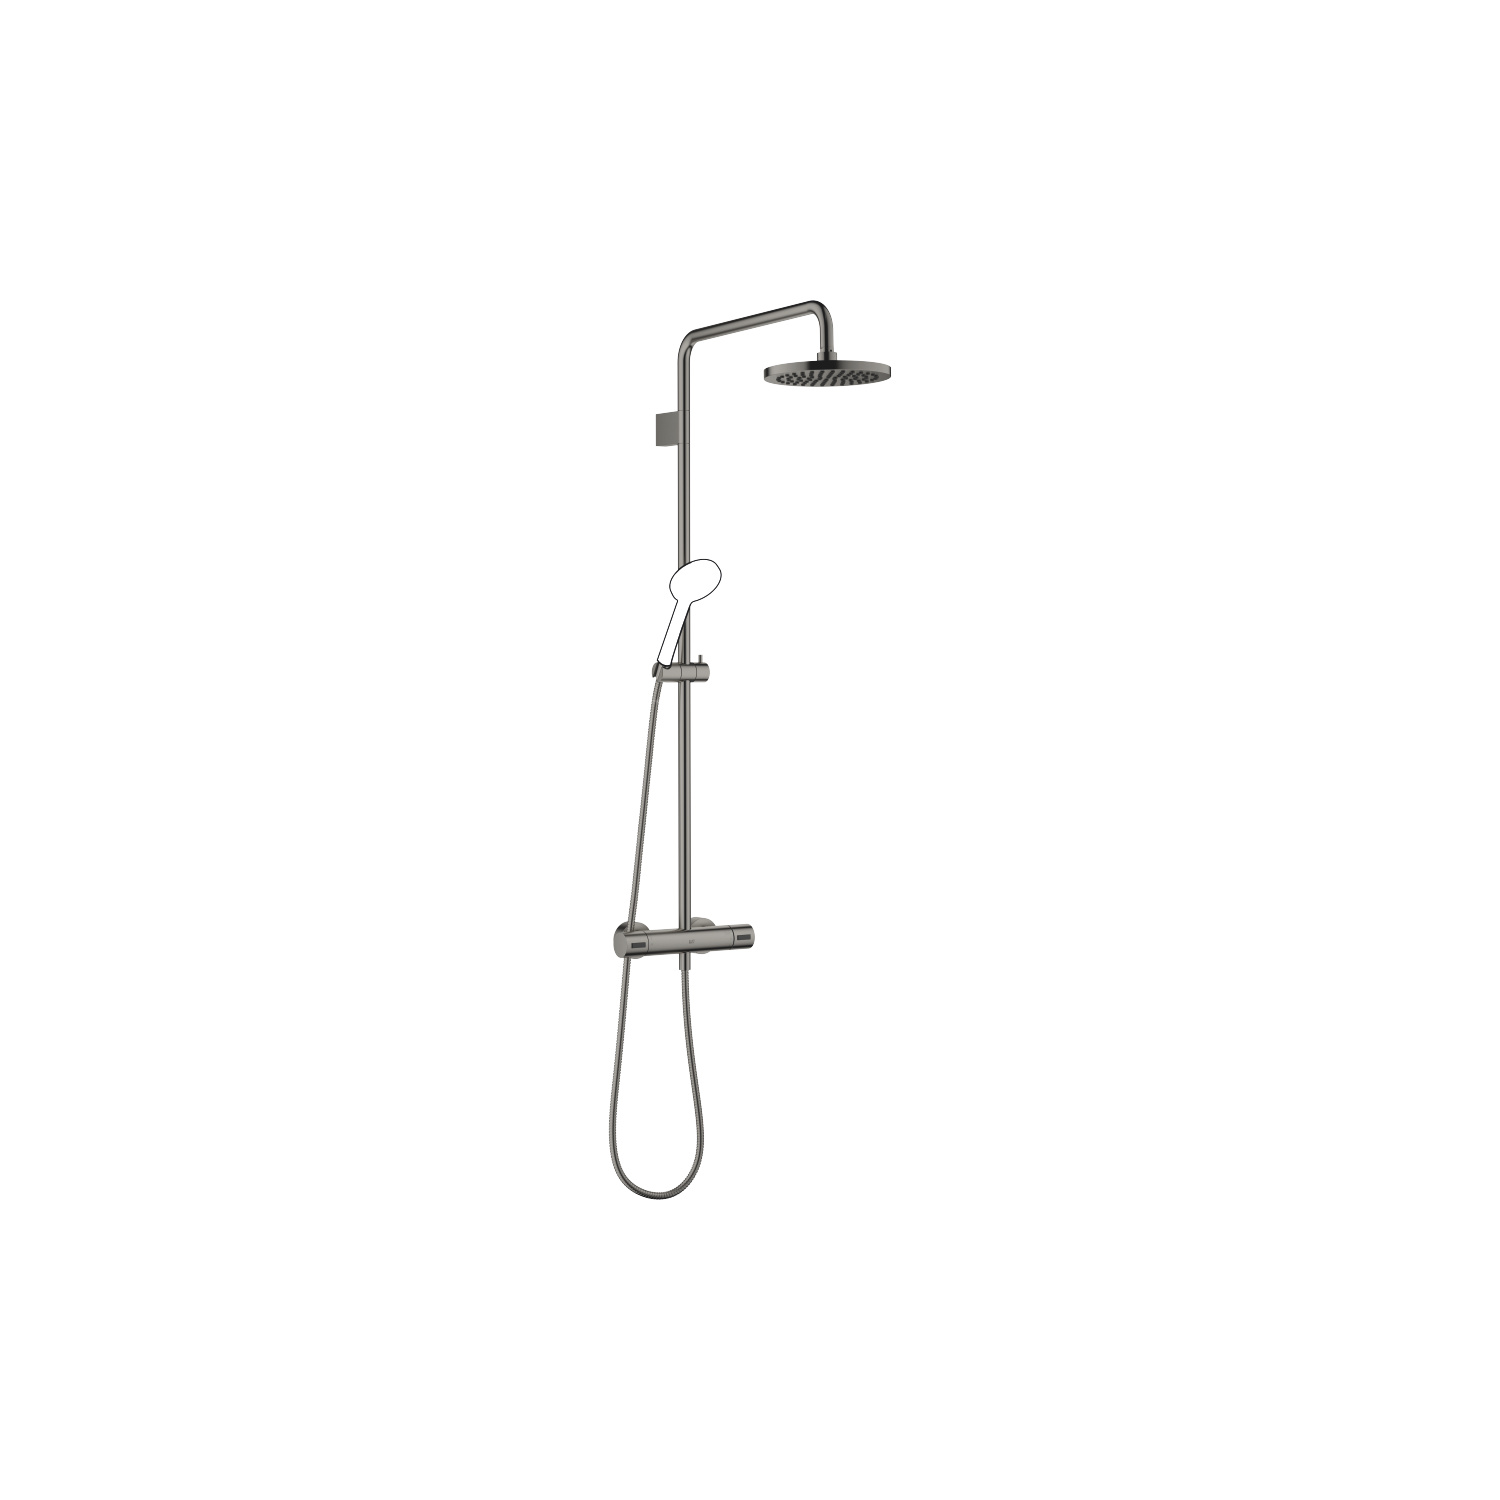 Showerpipe - Dark Platinum matt - 34 459 979-99